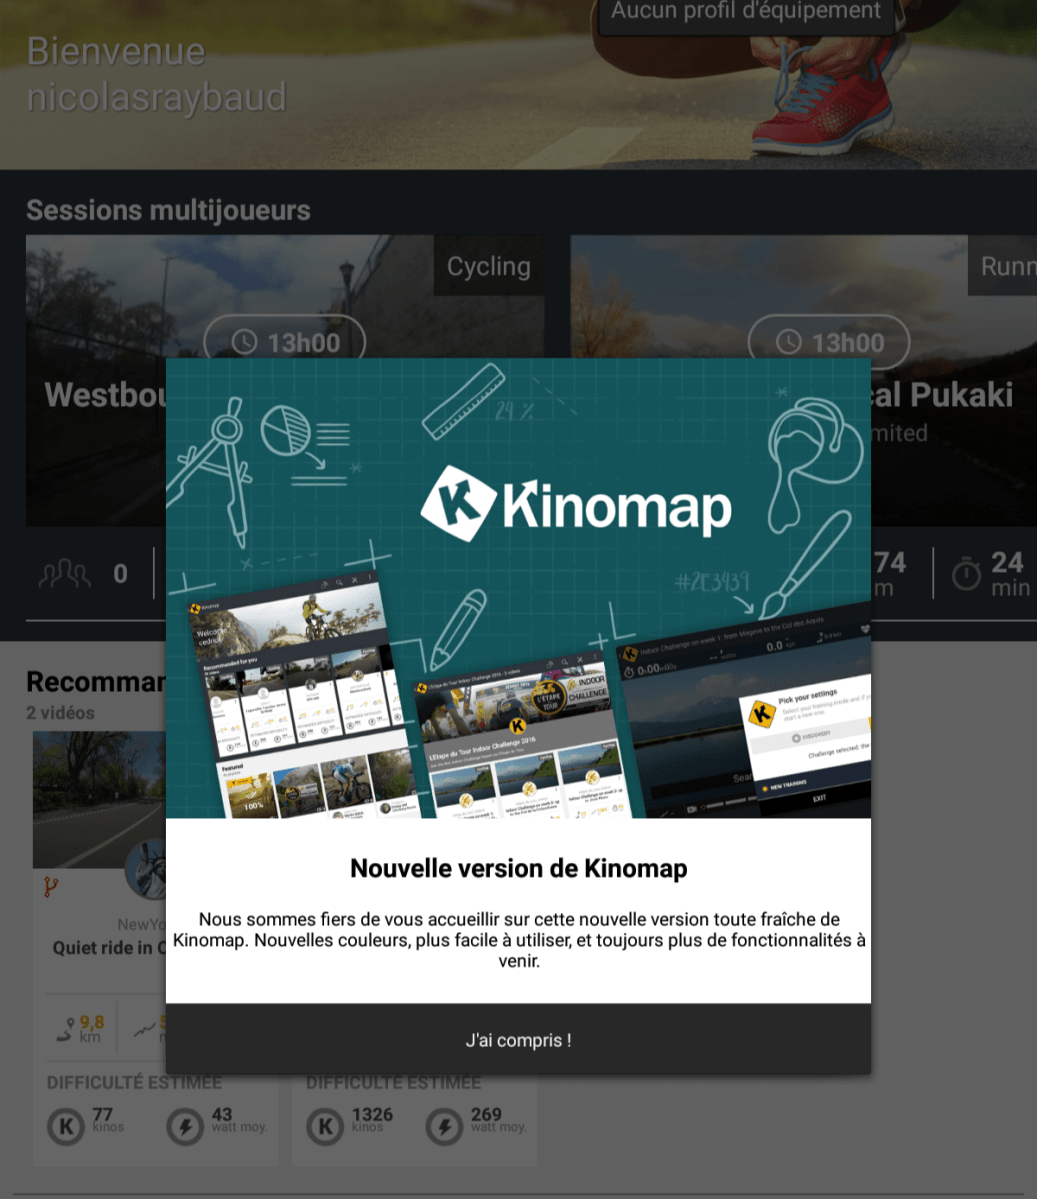 [:fr]Kinomap. 7 raisons qui vont vous motiver à faire du sport à l'intérieur.[:en]Kinomap. 7 reasons that will motivate you to do indoor and outdoor sports.[:]